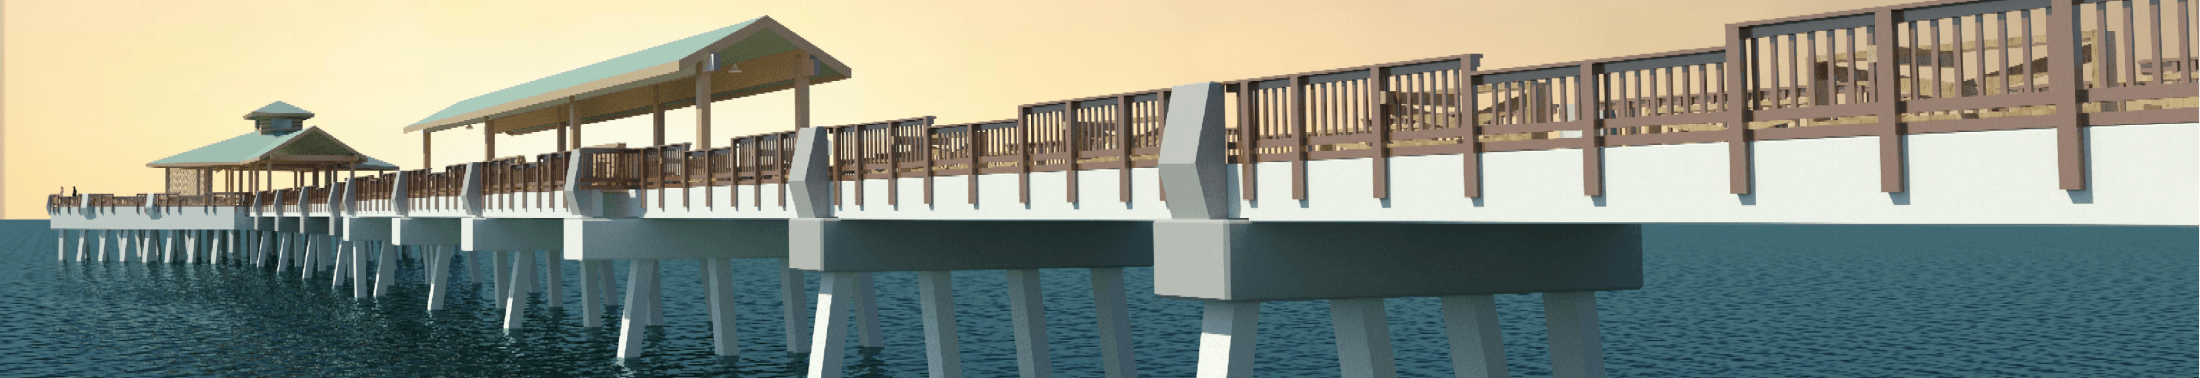 Digital rendering images for the new Folly Beach Pier